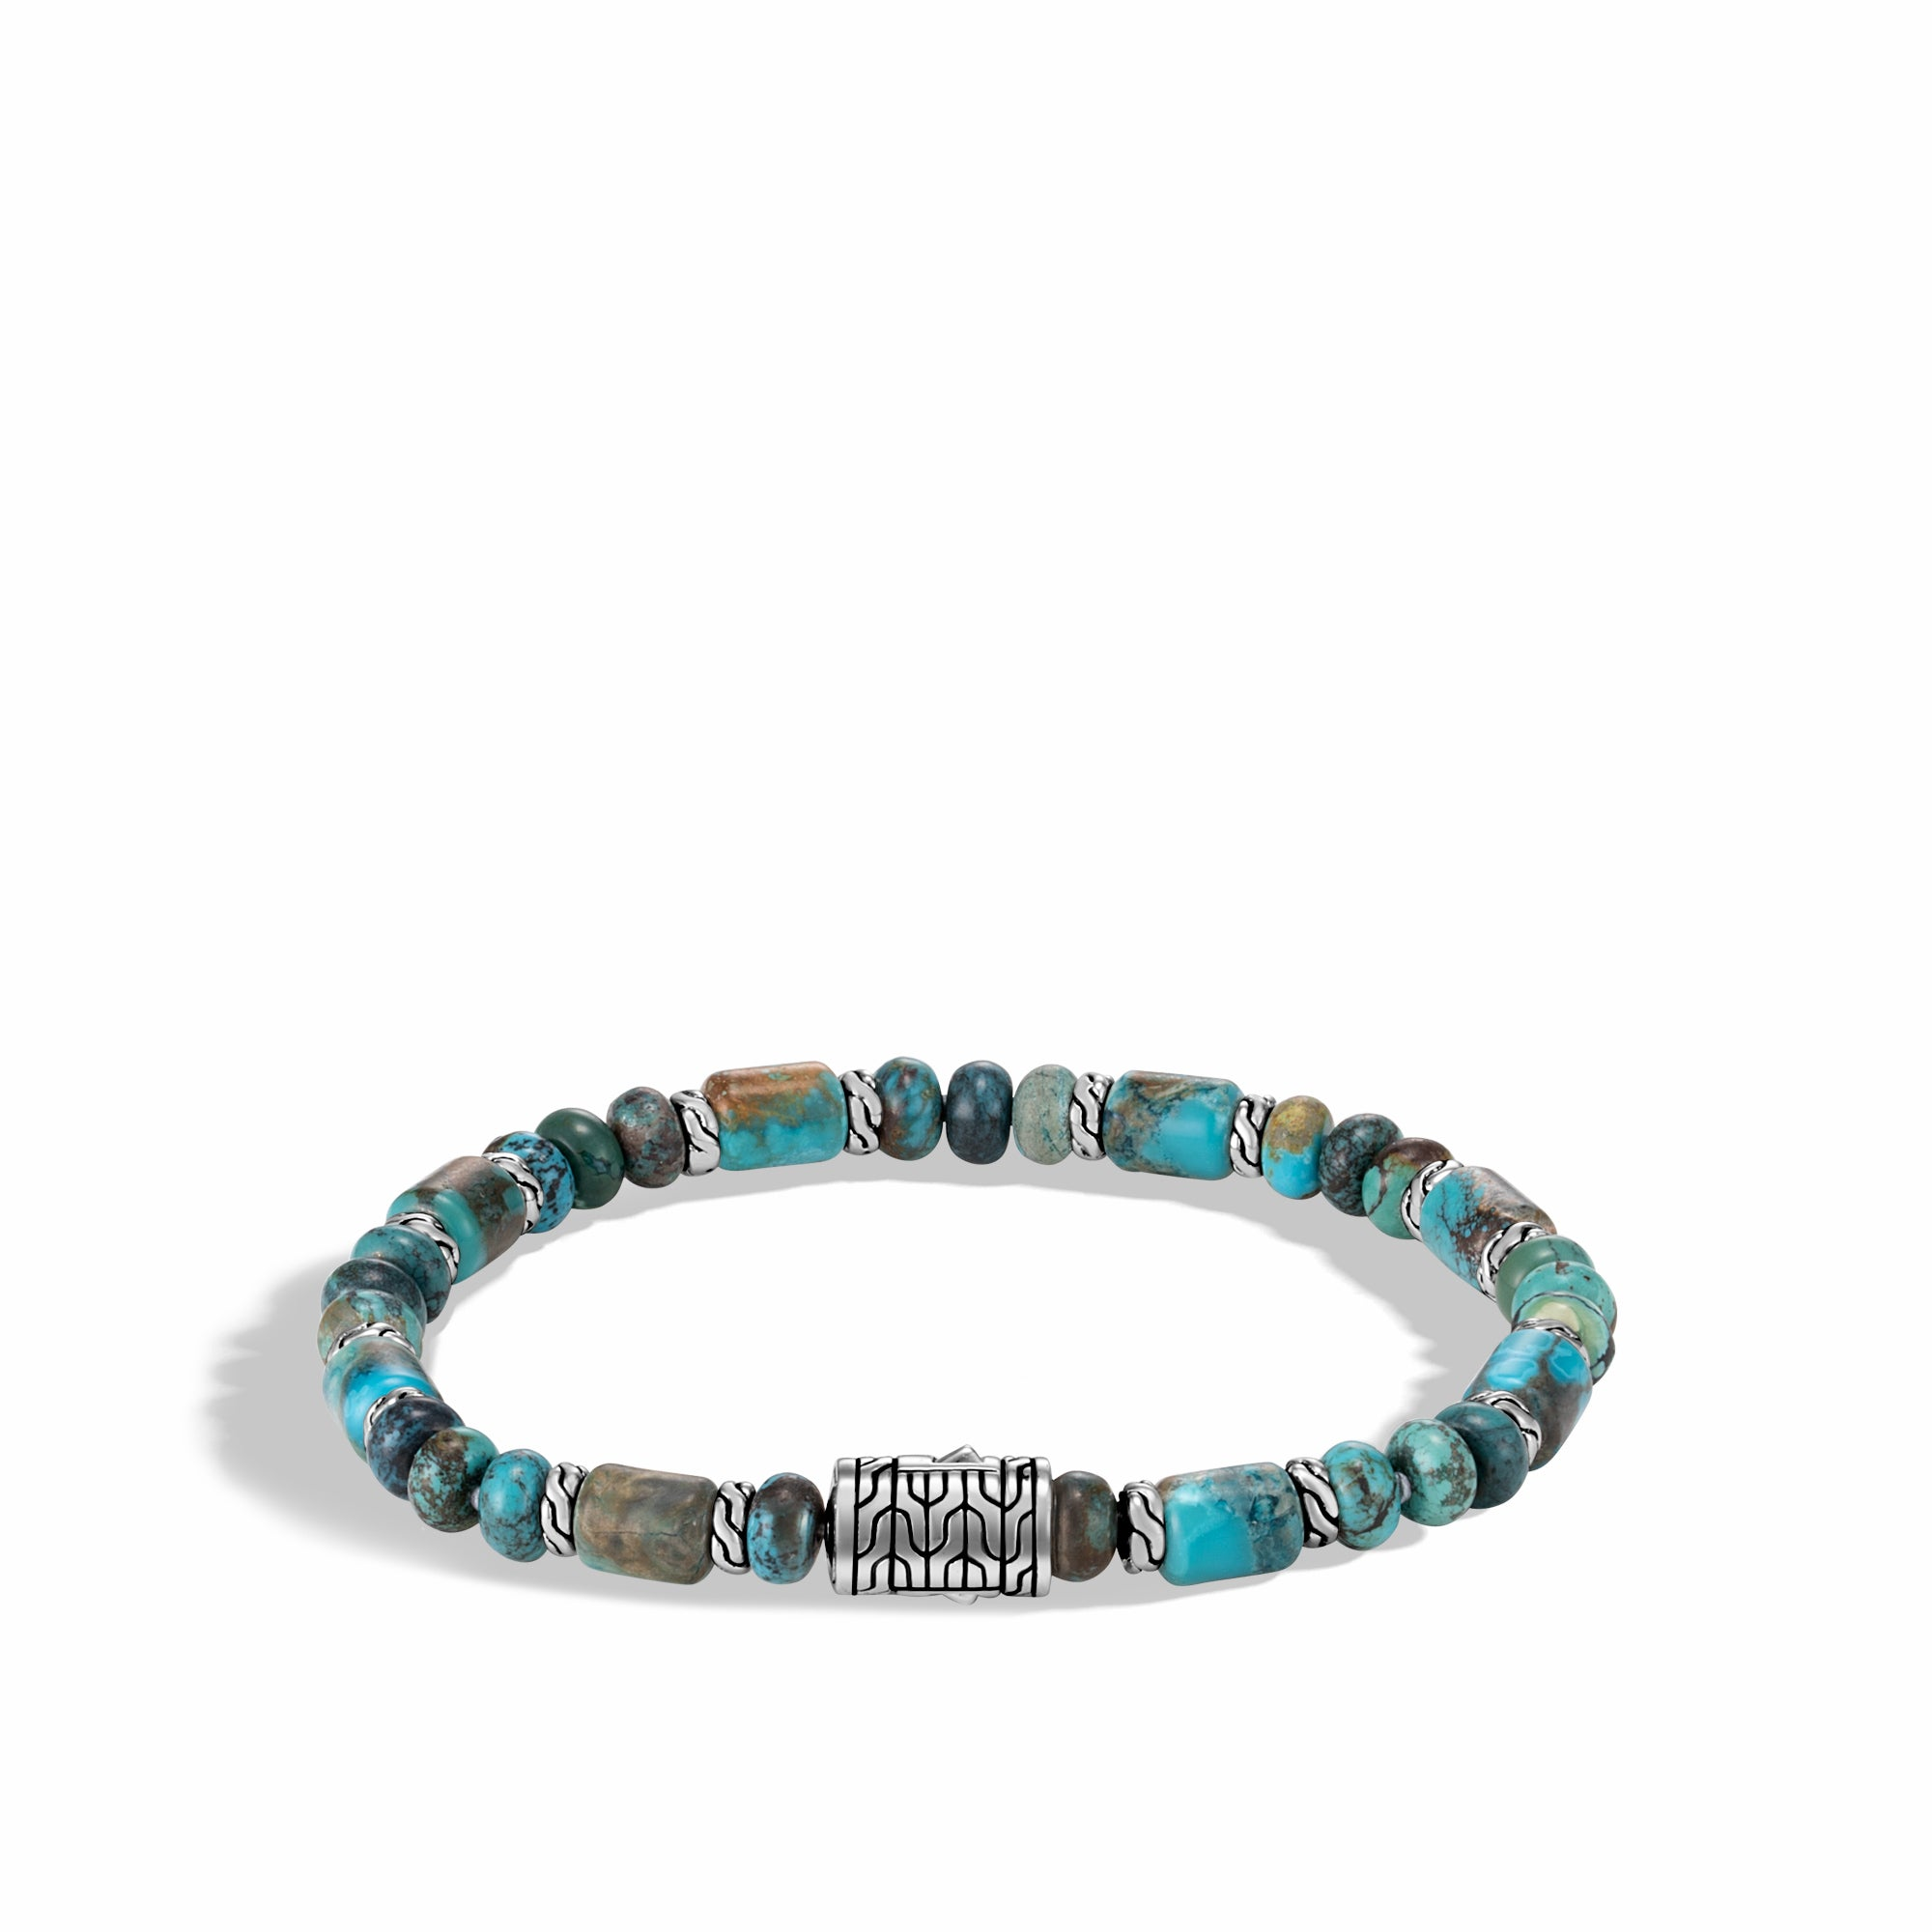 Bead Bracelet with Mixed Turquoise